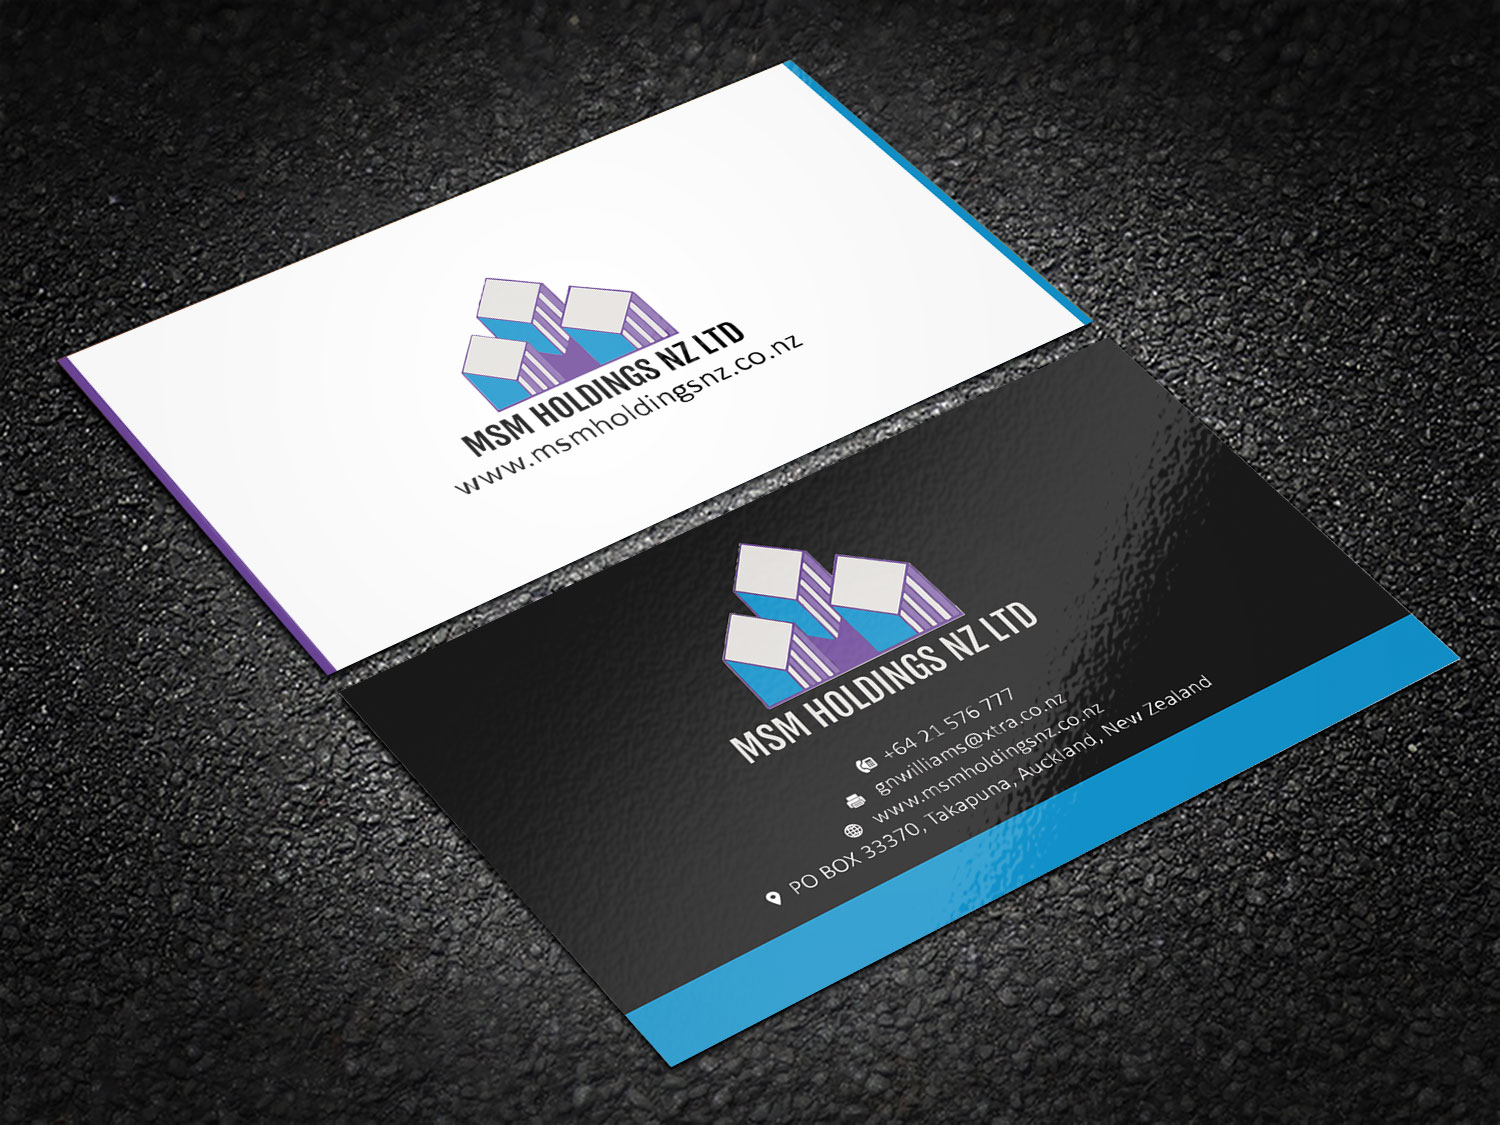 Upmarket serious investment business card design for roar honey nz business card design by creation lanka for roar honey nz limited design 17038659 reheart Image collections